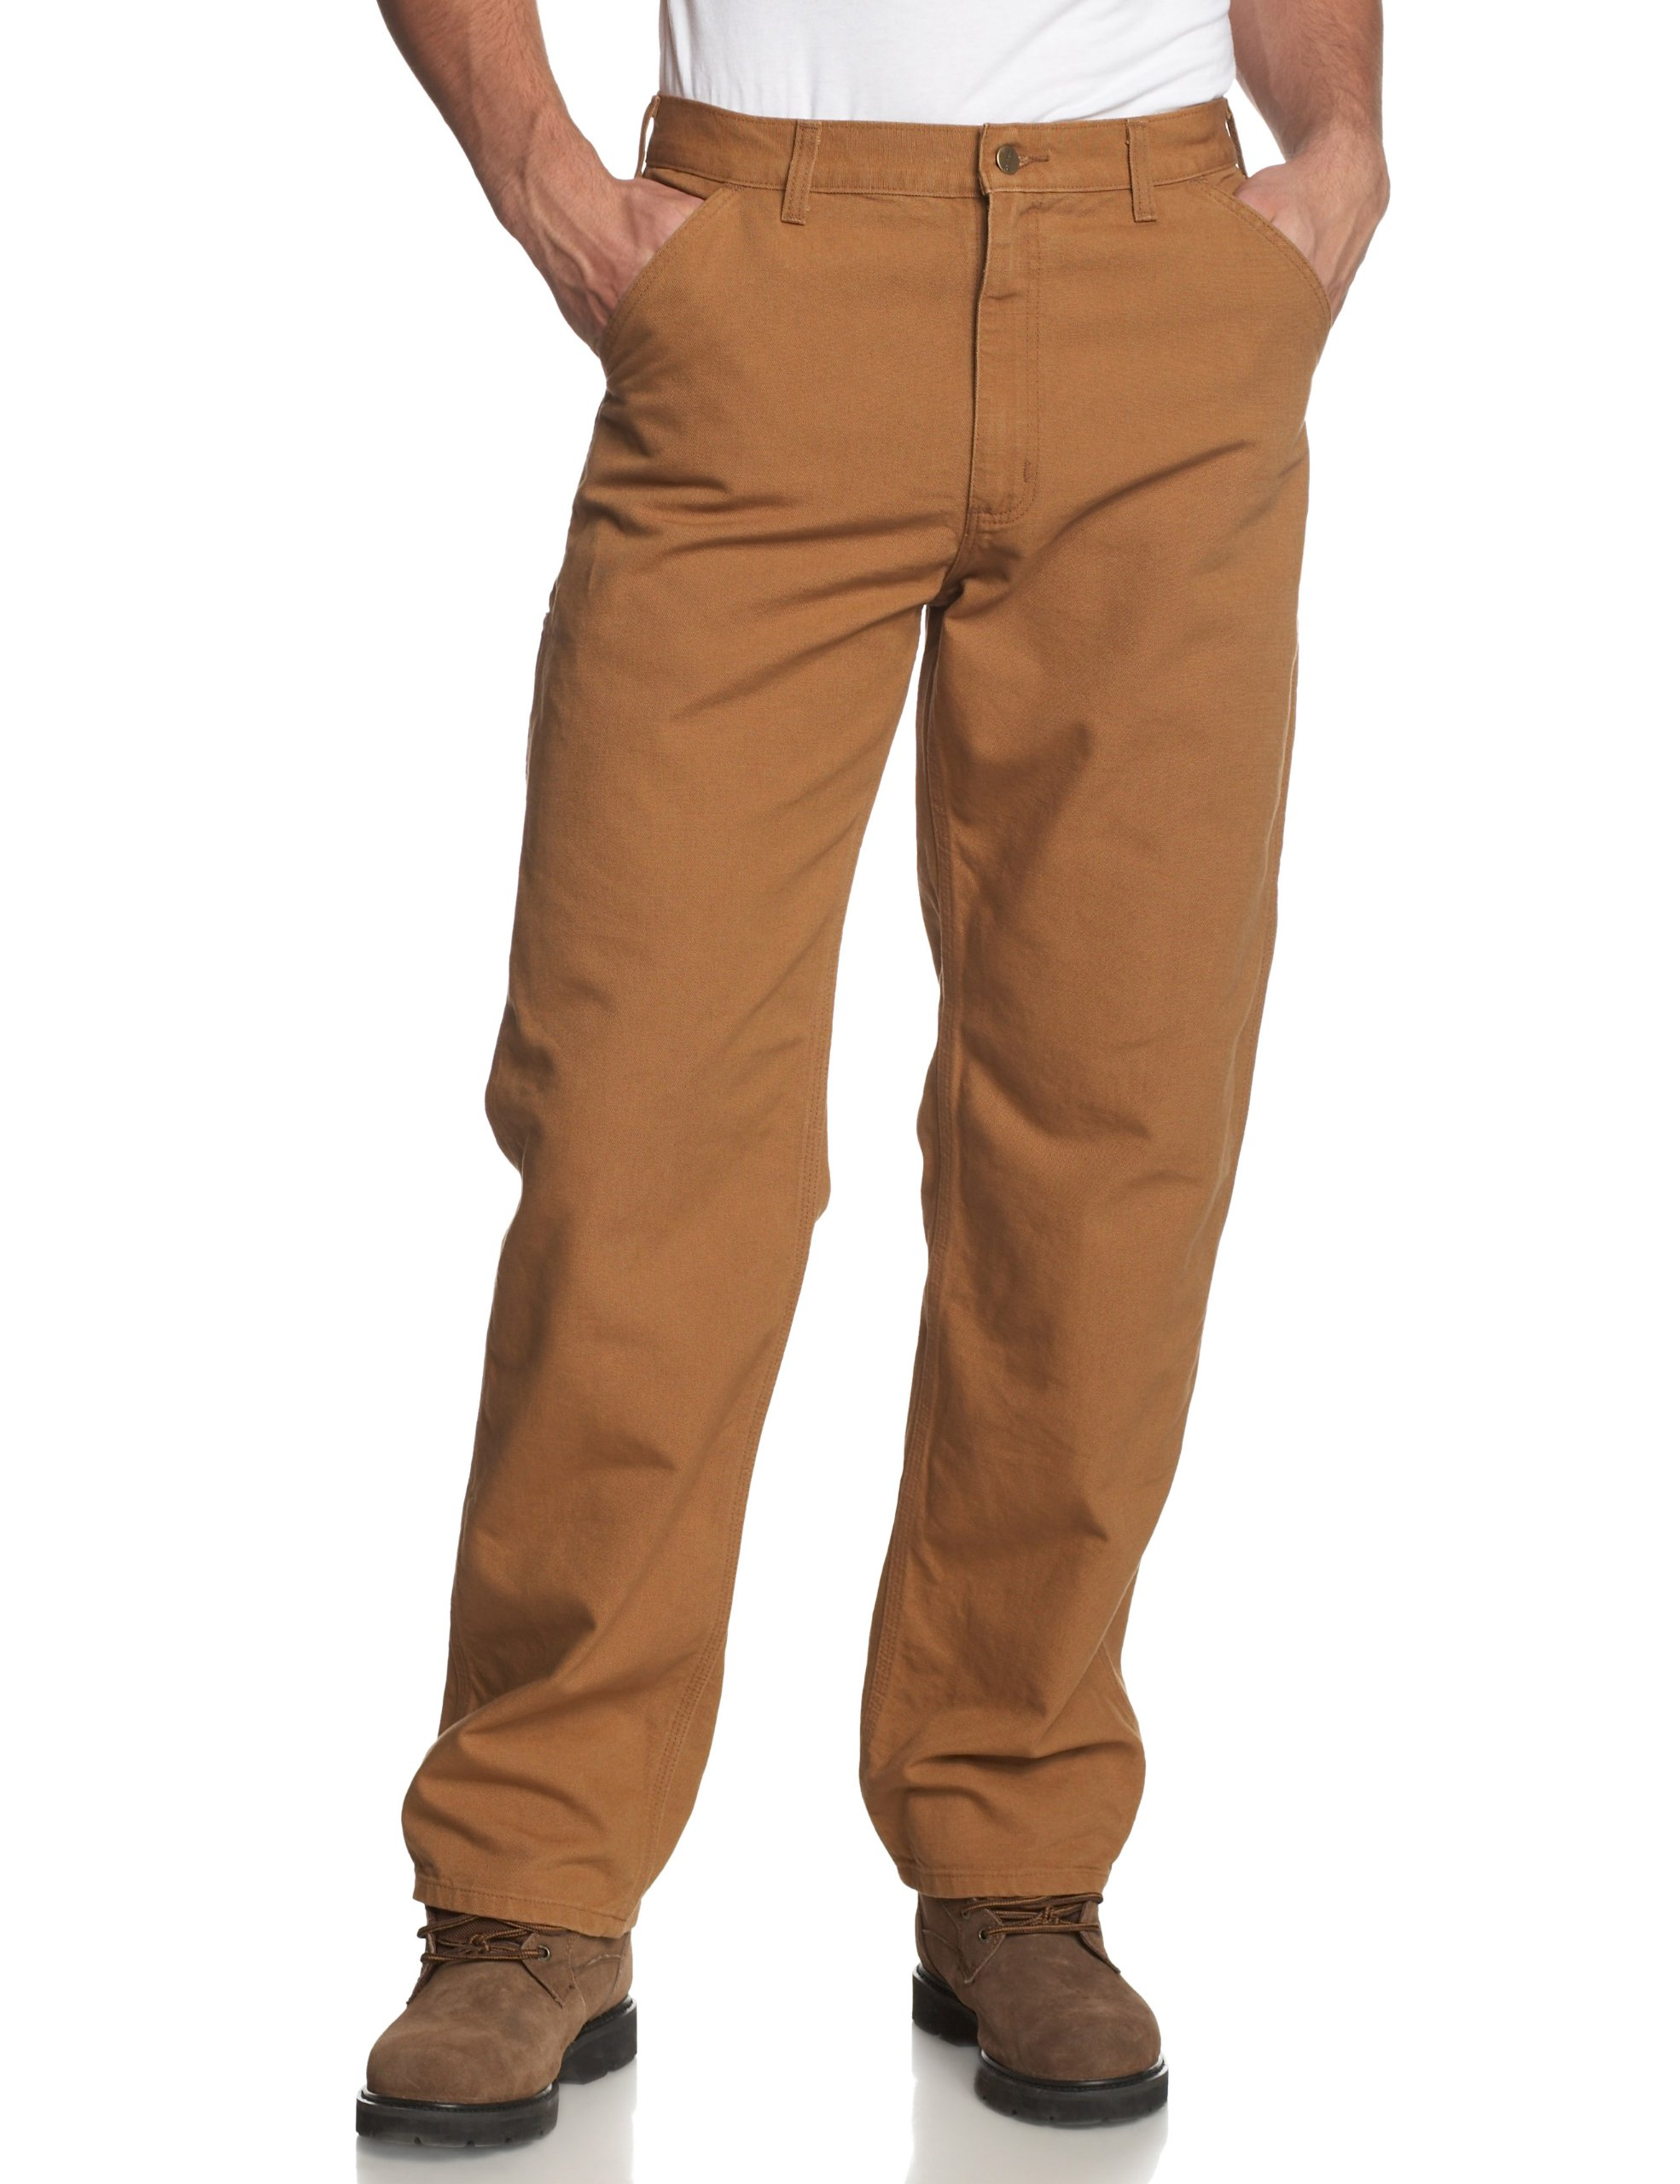 Carhartt Men's Washed Duck Work Dungaree Pant,Carhartt Brown,38W x 30L by Carhartt